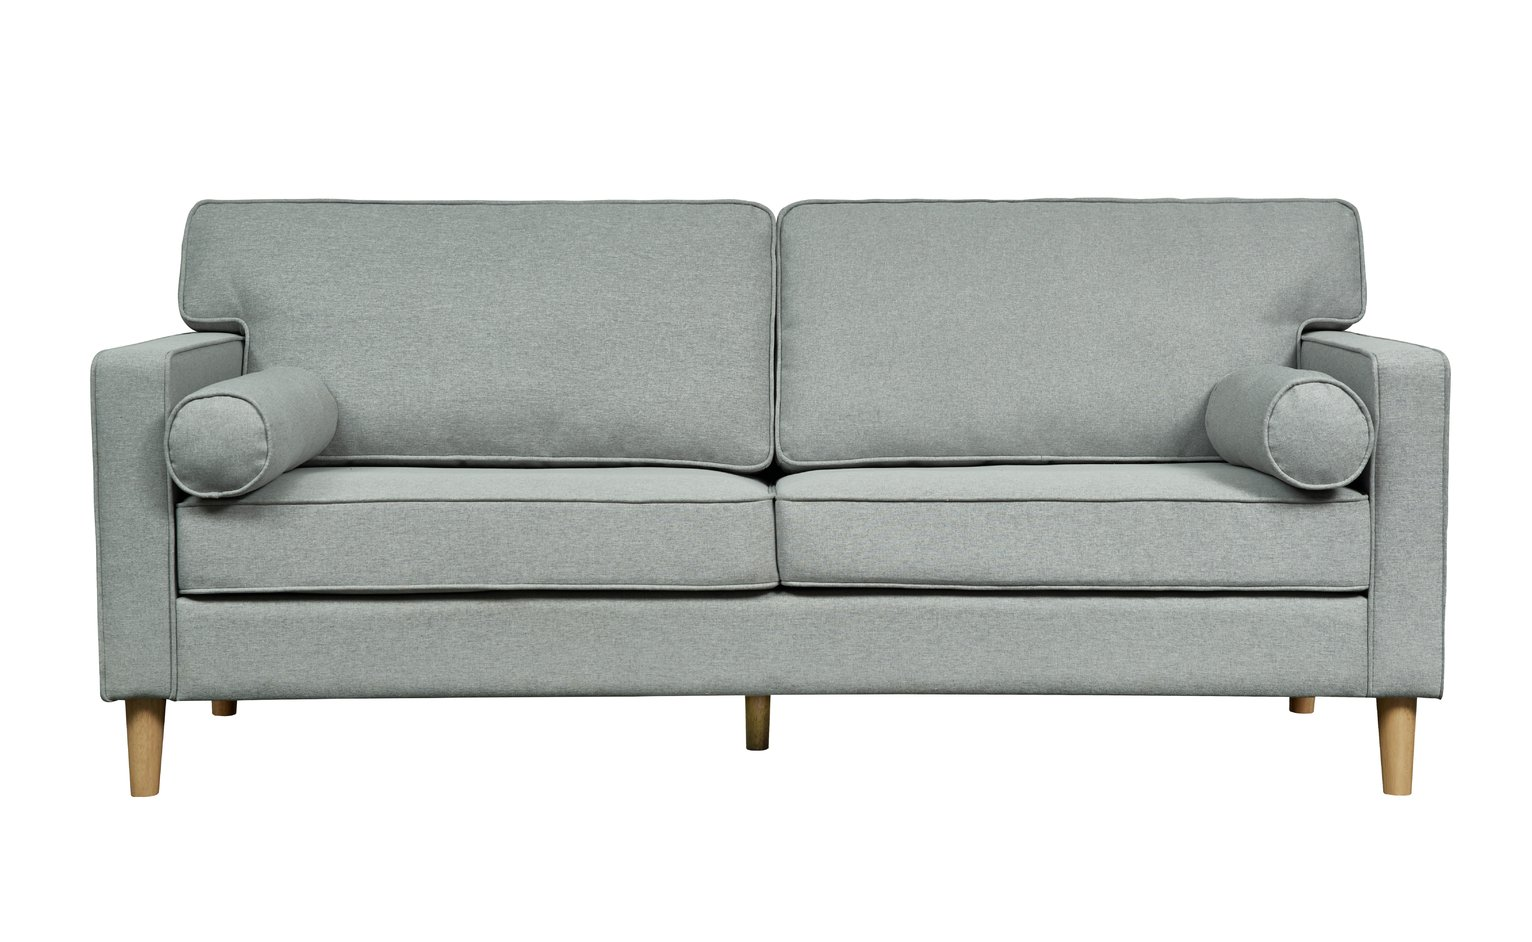 Argos Home Christopher 3 Seater Fabric Sofa - Grey